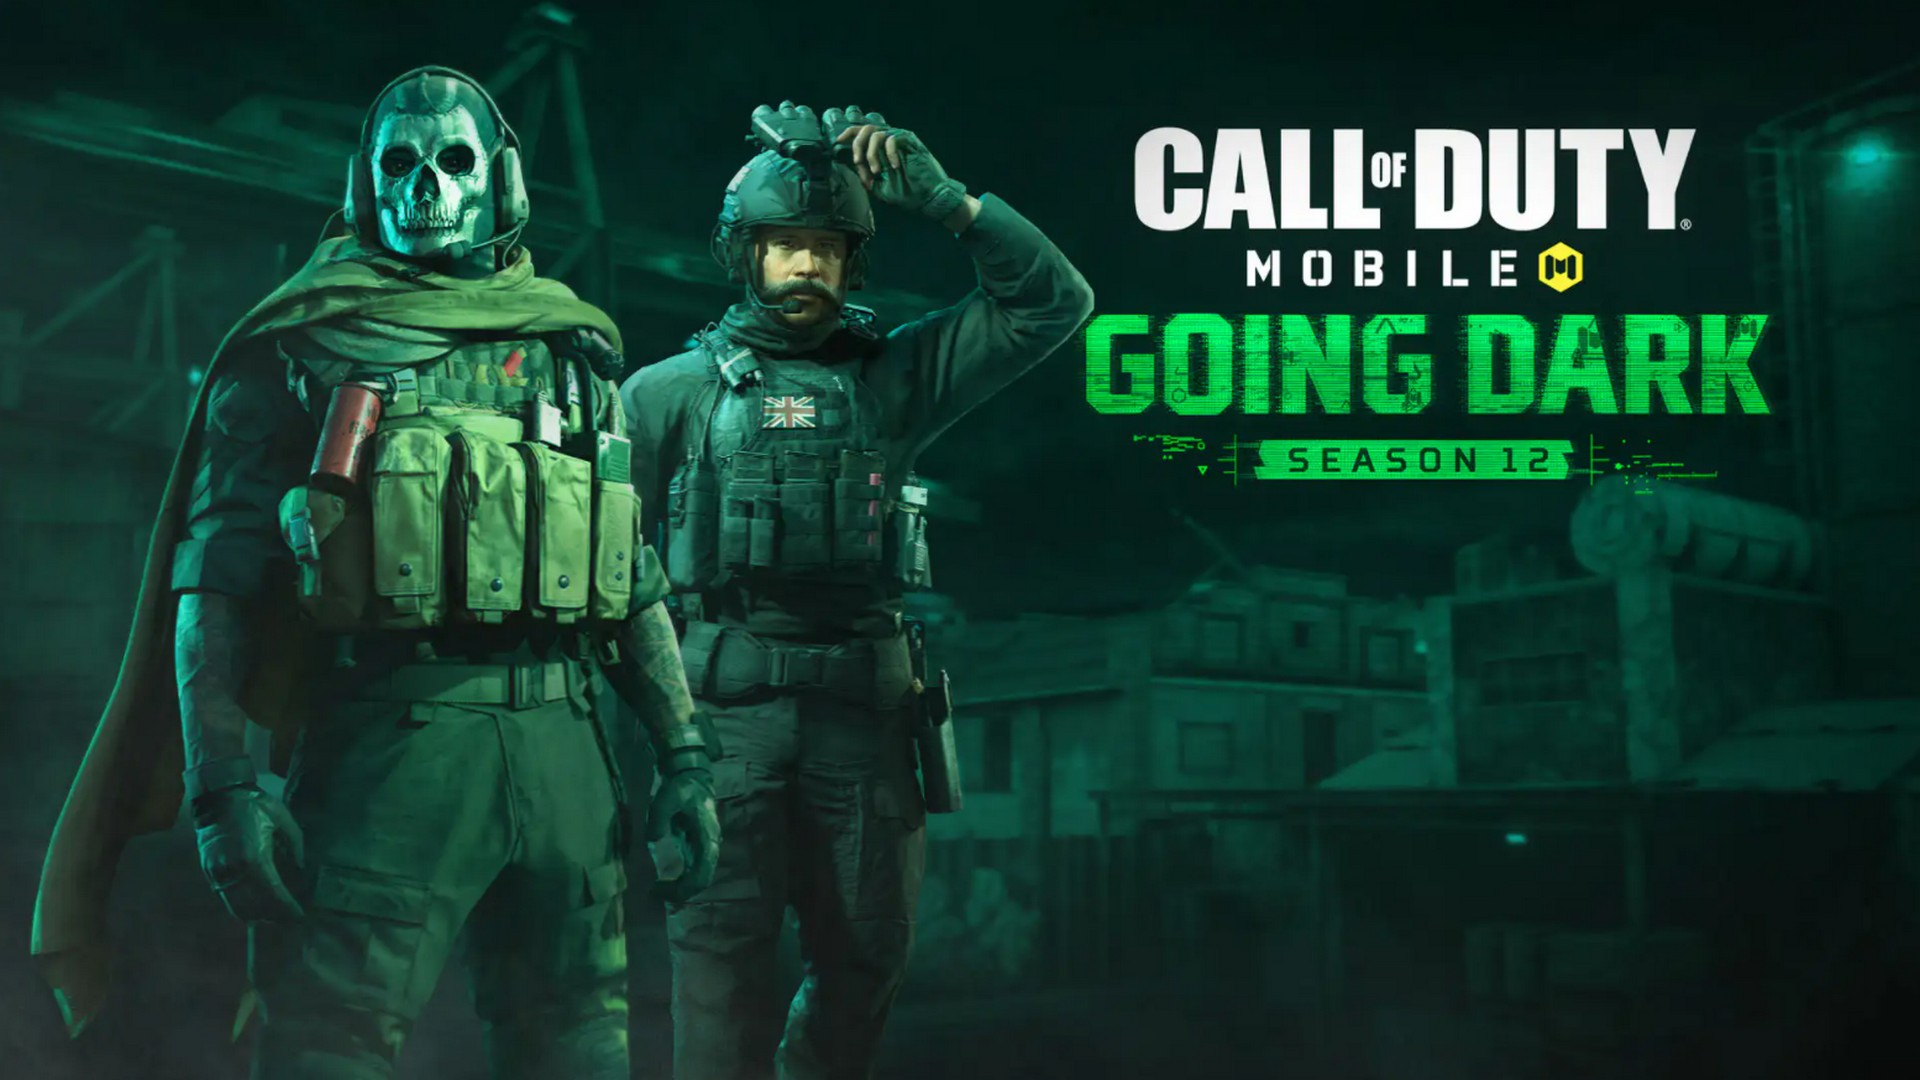 Call of Duty: Mobile Season 12: Going Dark – Now Live